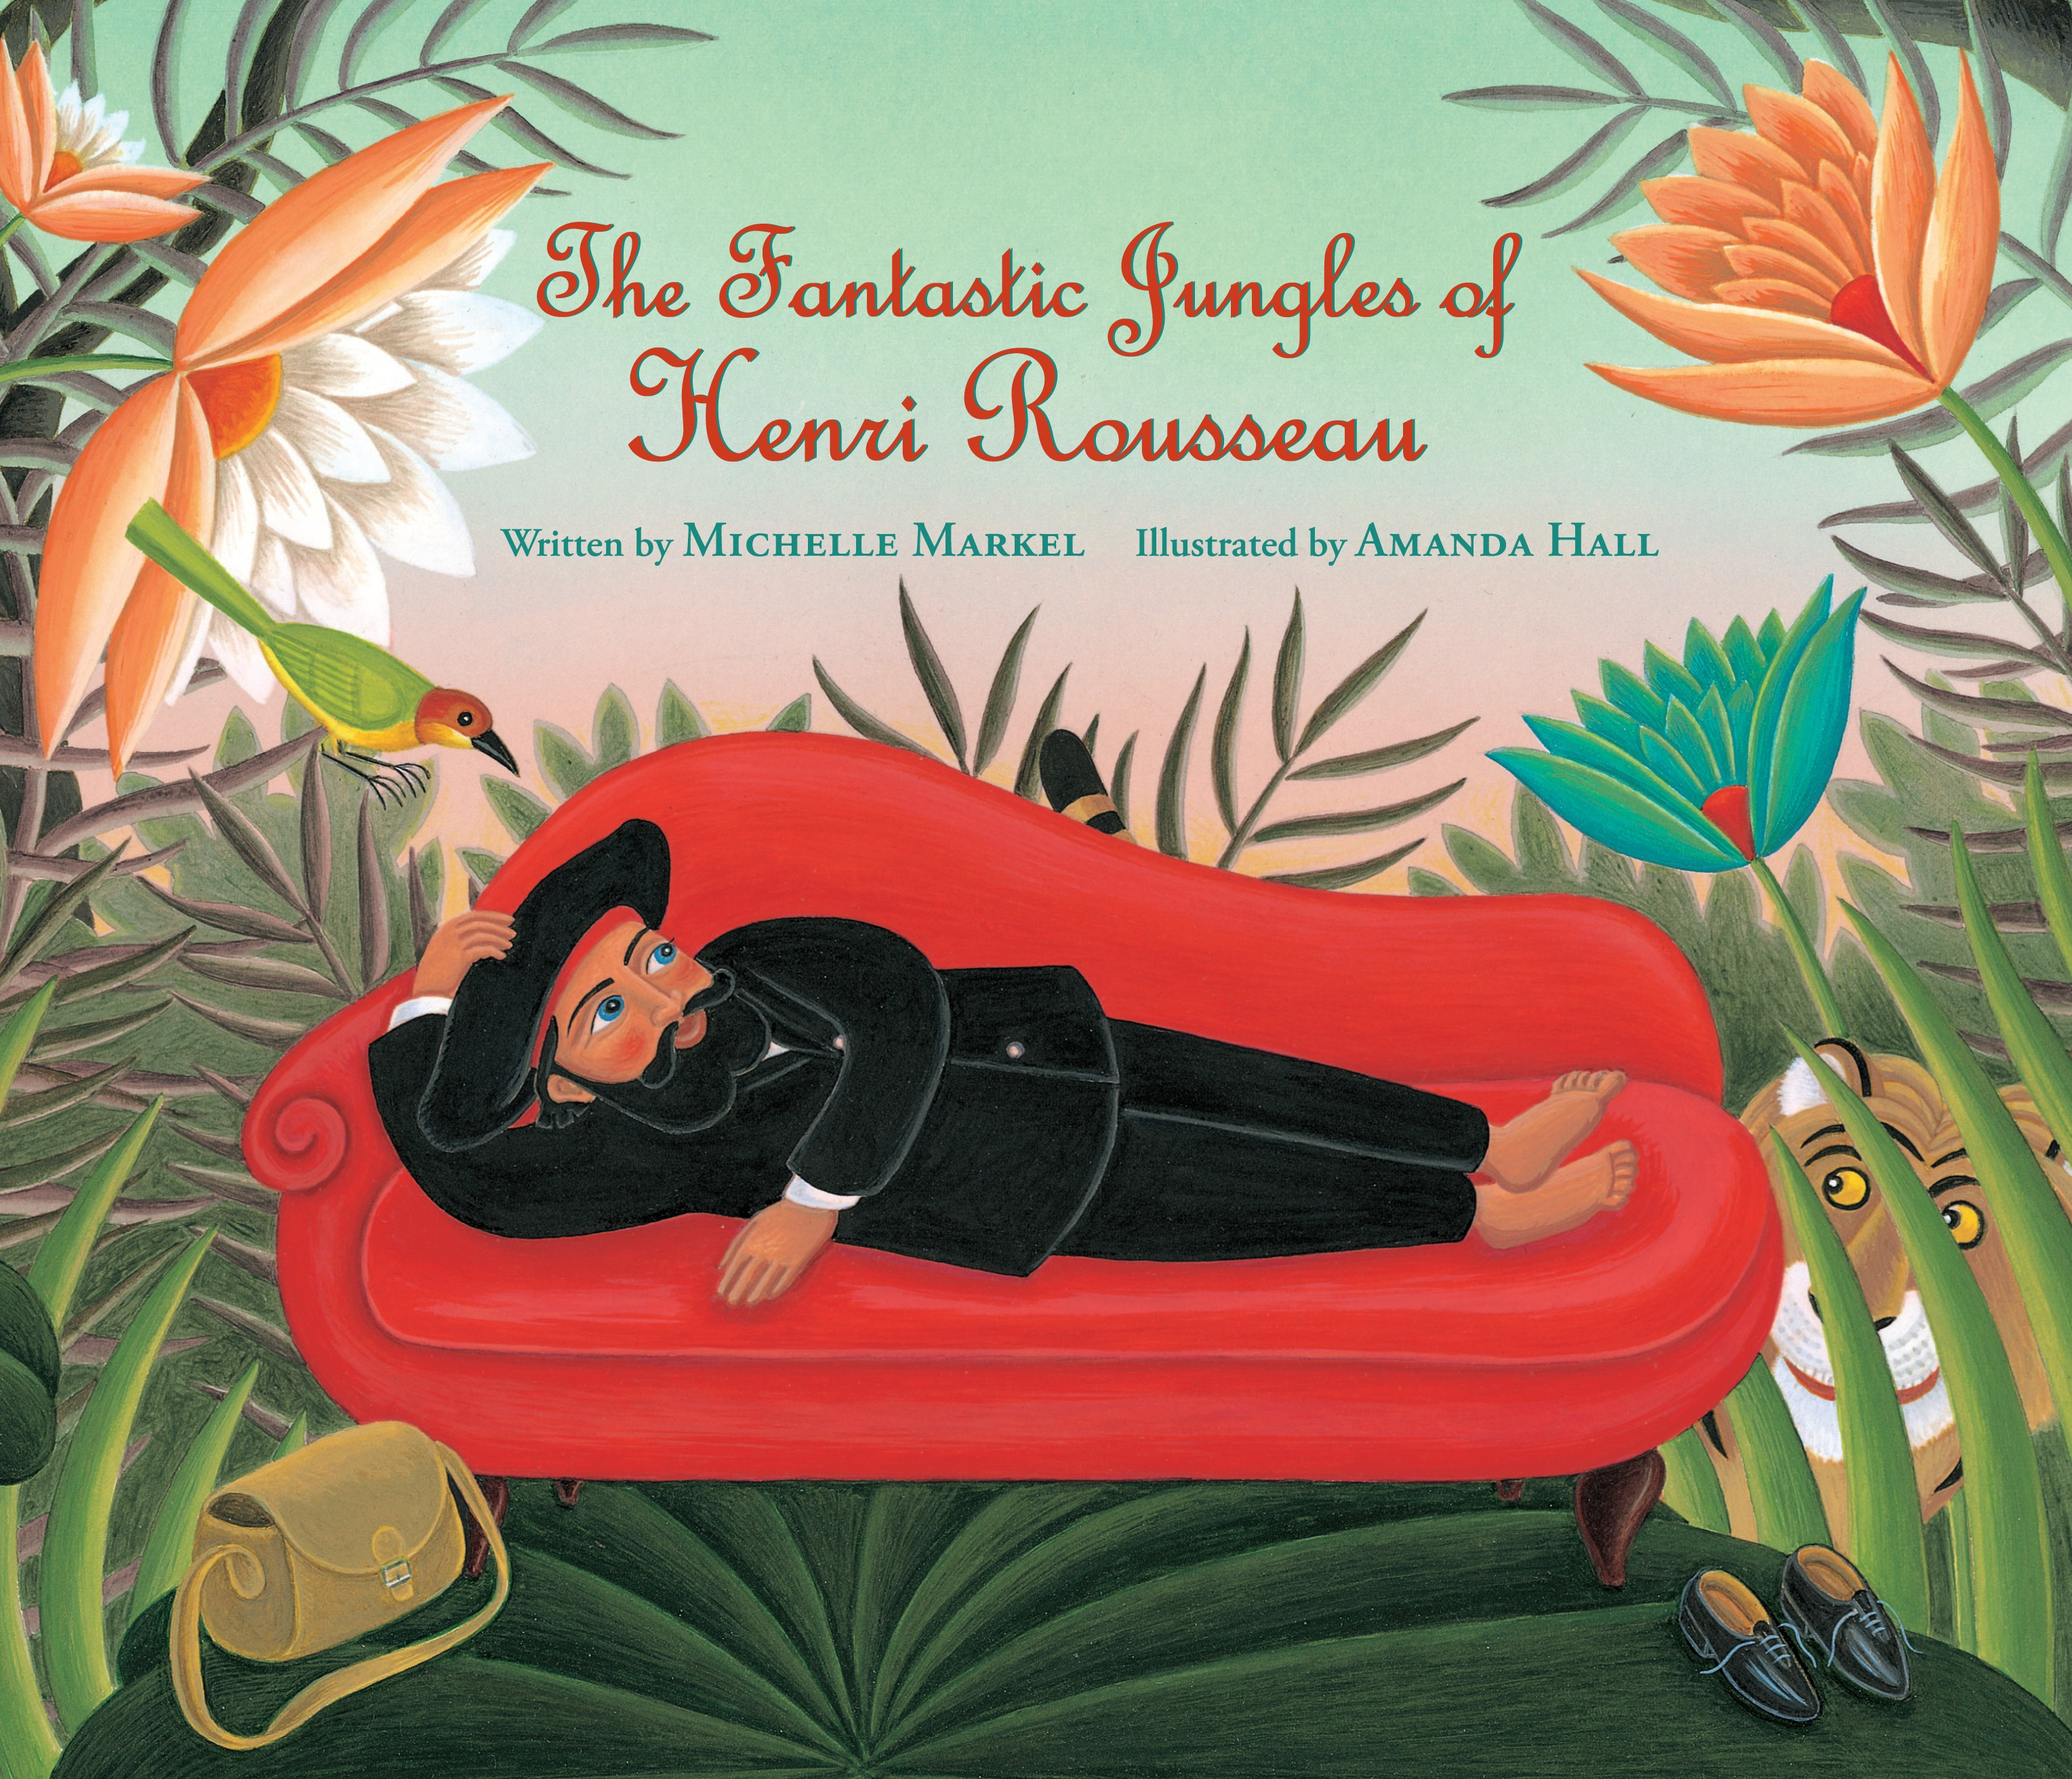 The Fantastic Jungles of Henri Rousseau